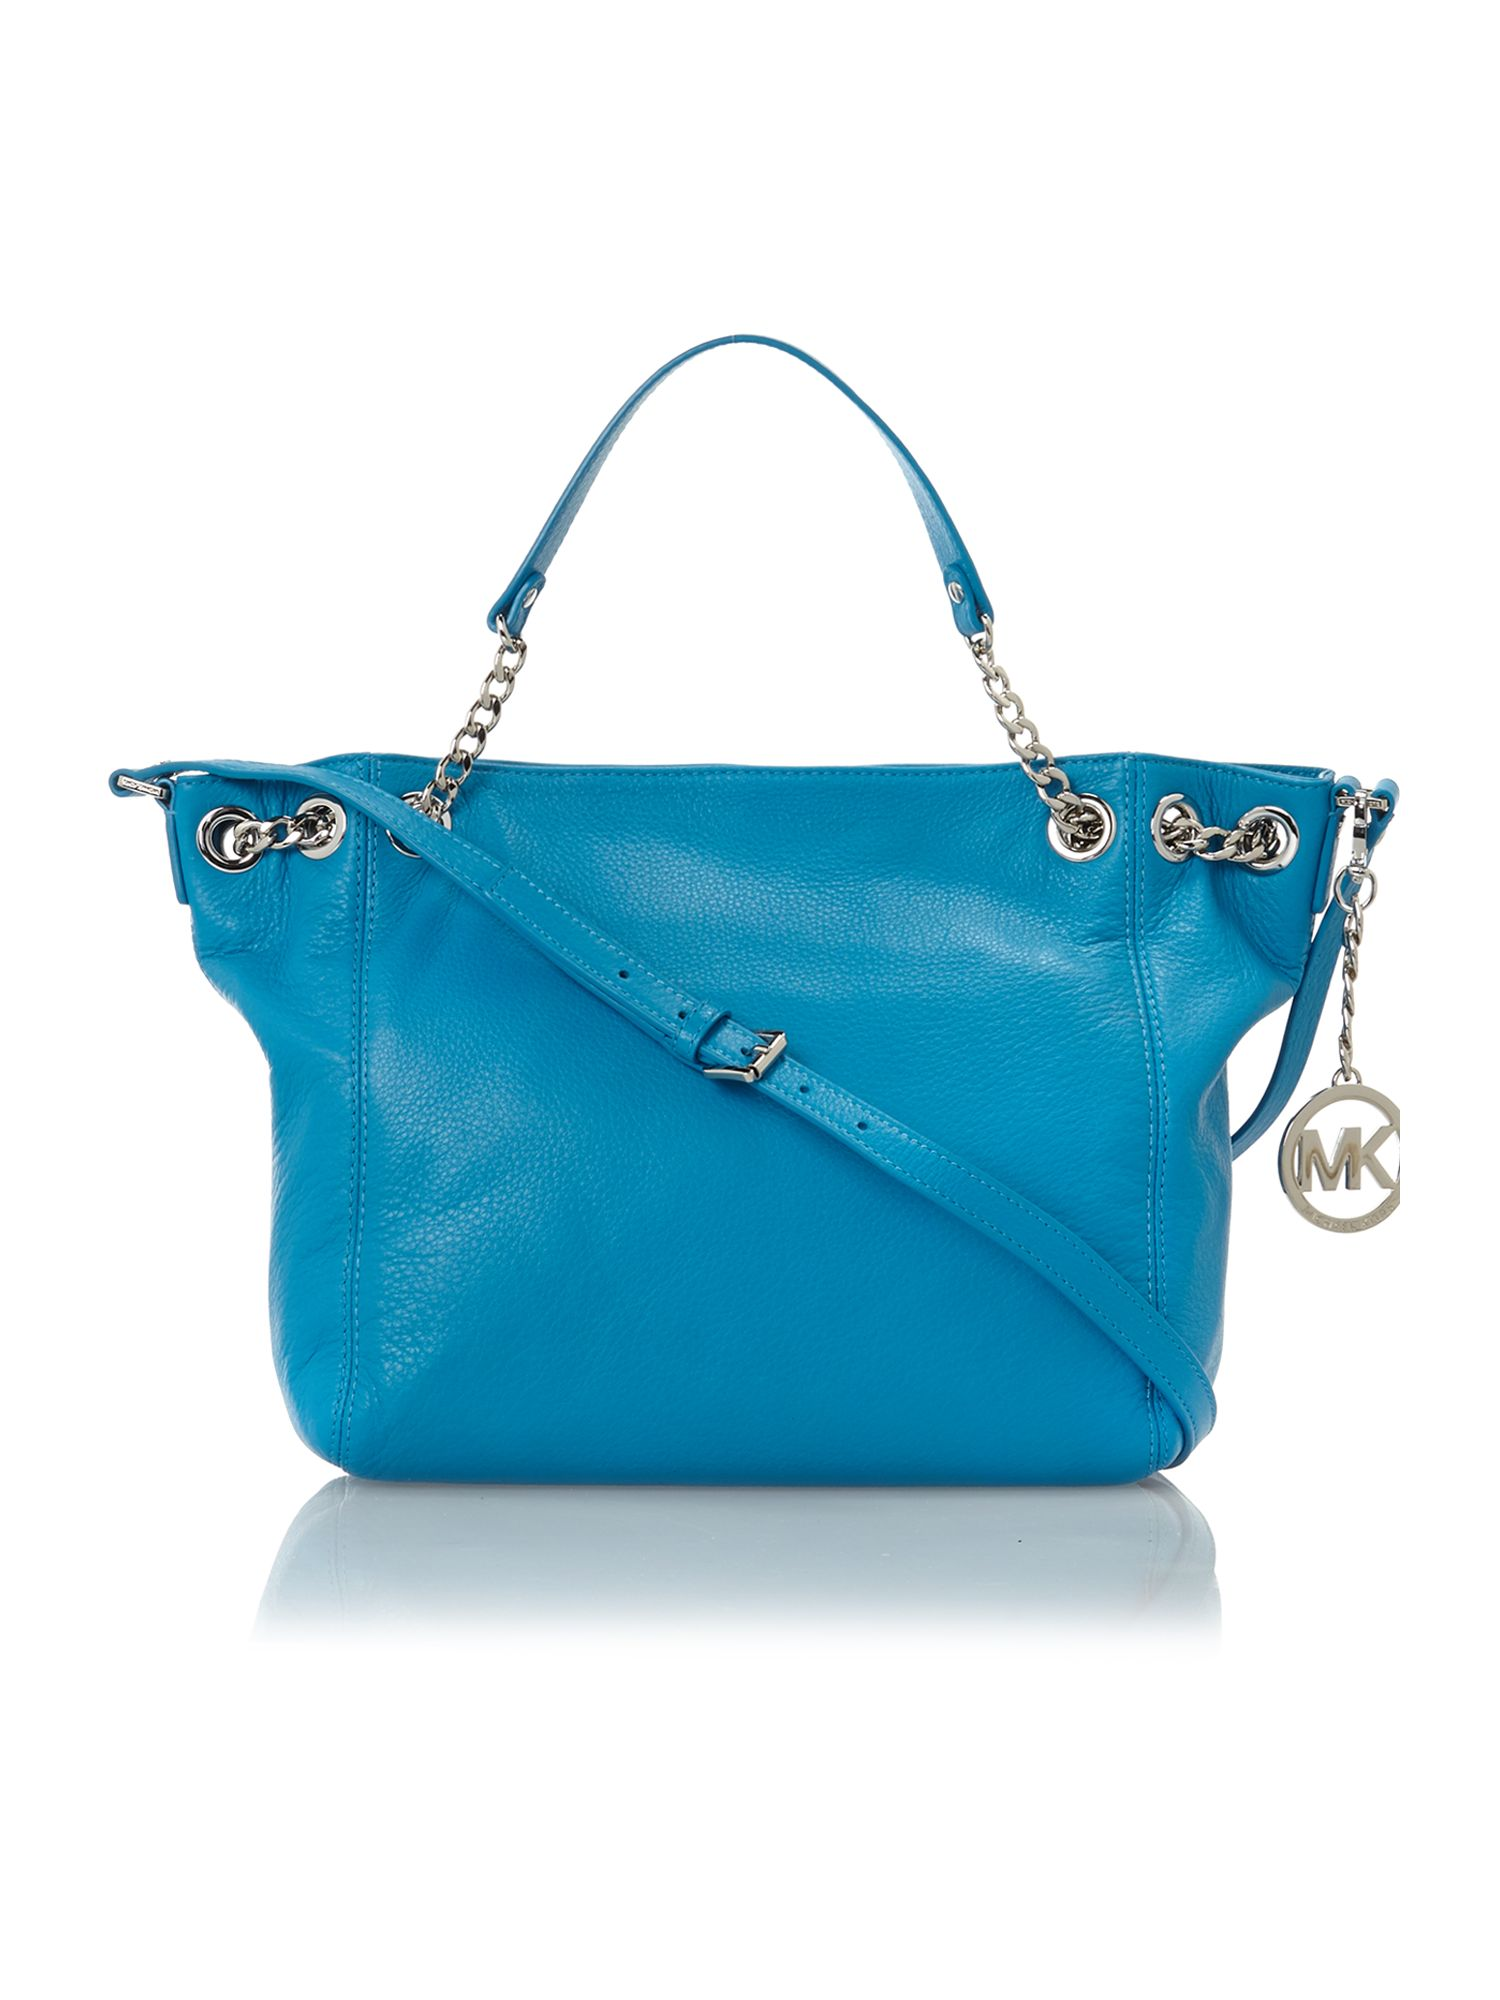 Jet Set Chain blue tote bag